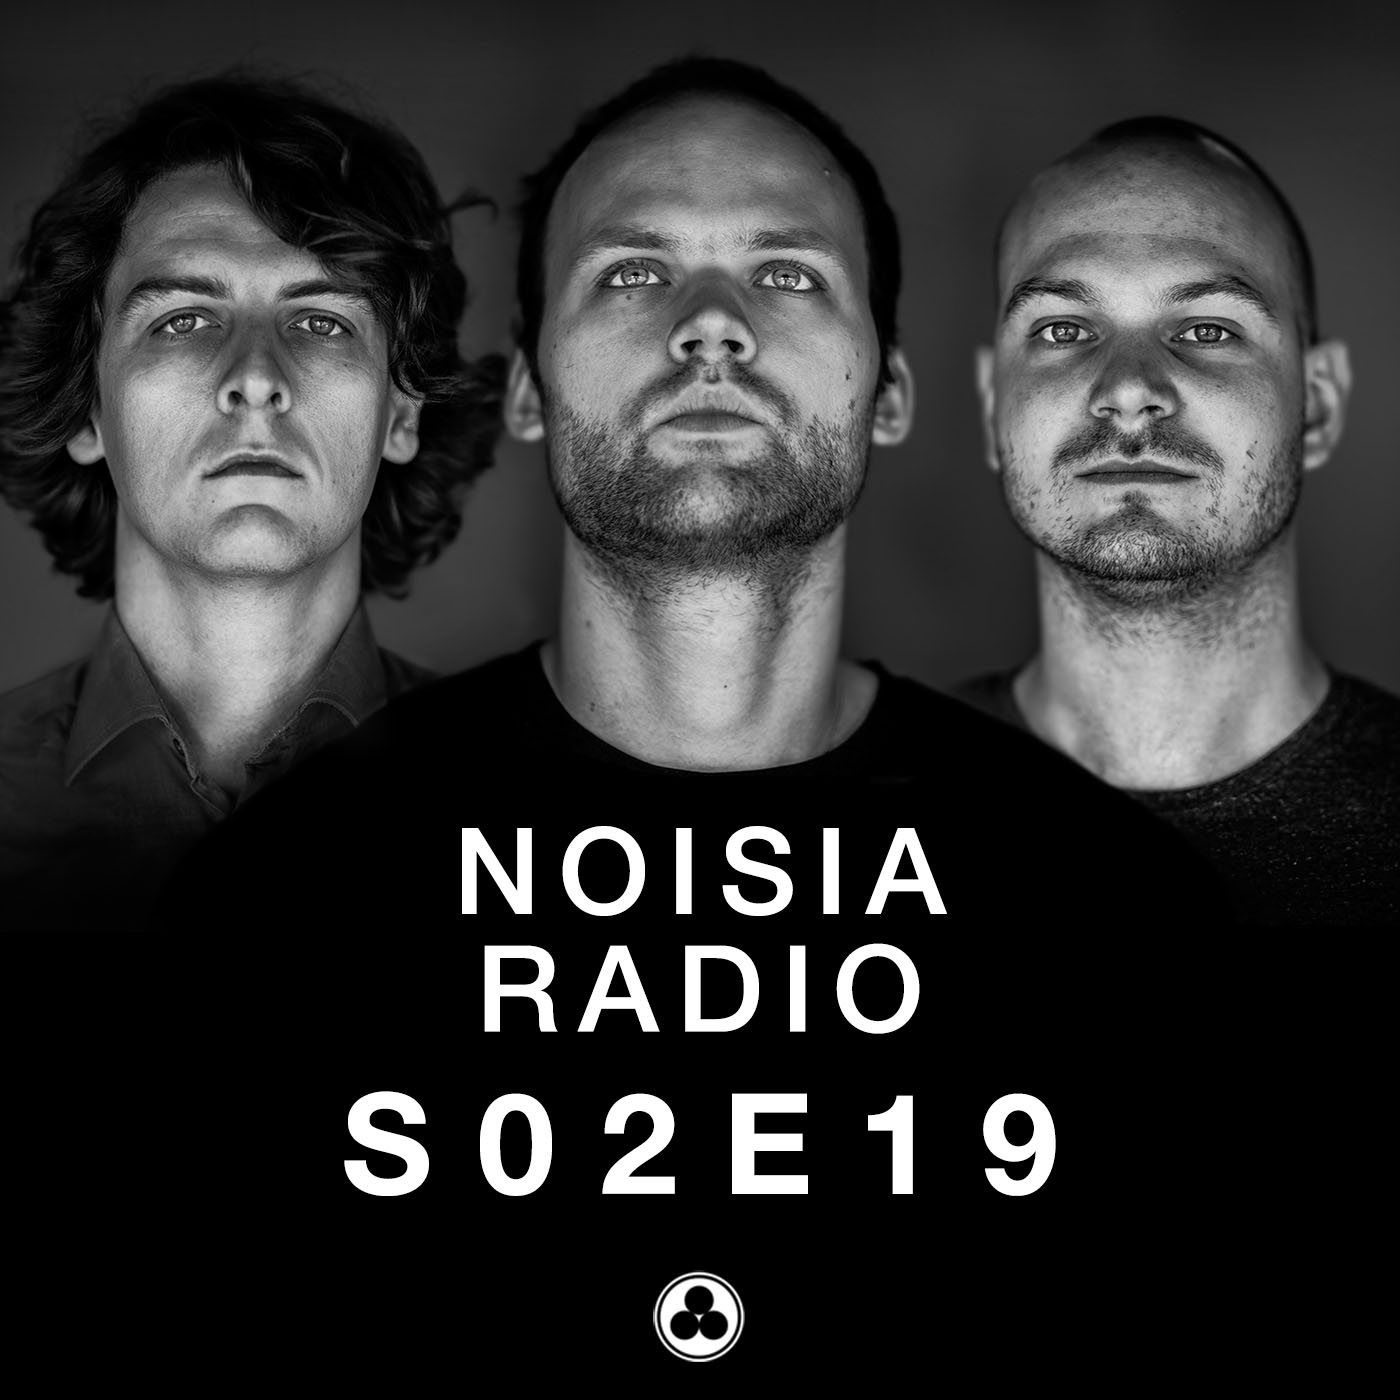 Noisia Radio S02E19